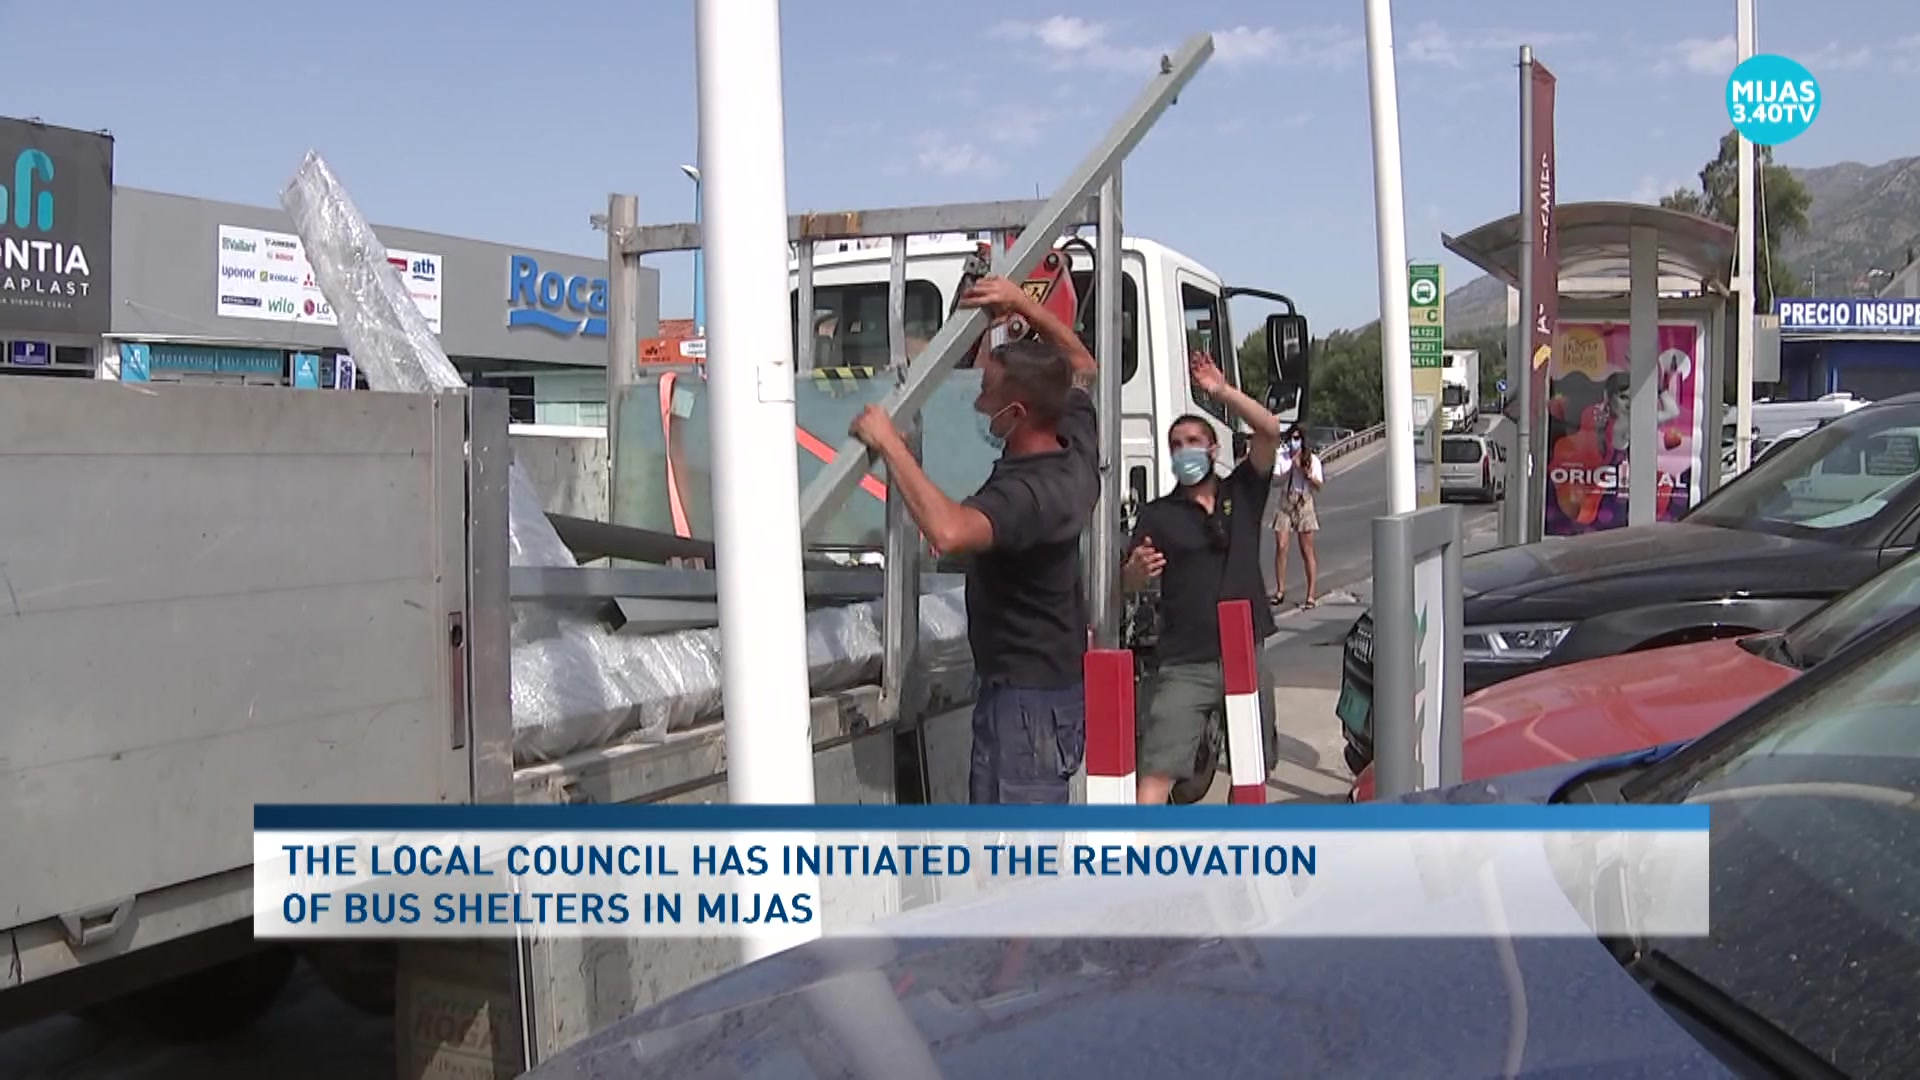 Mijas begins the renovation of the bus shelters